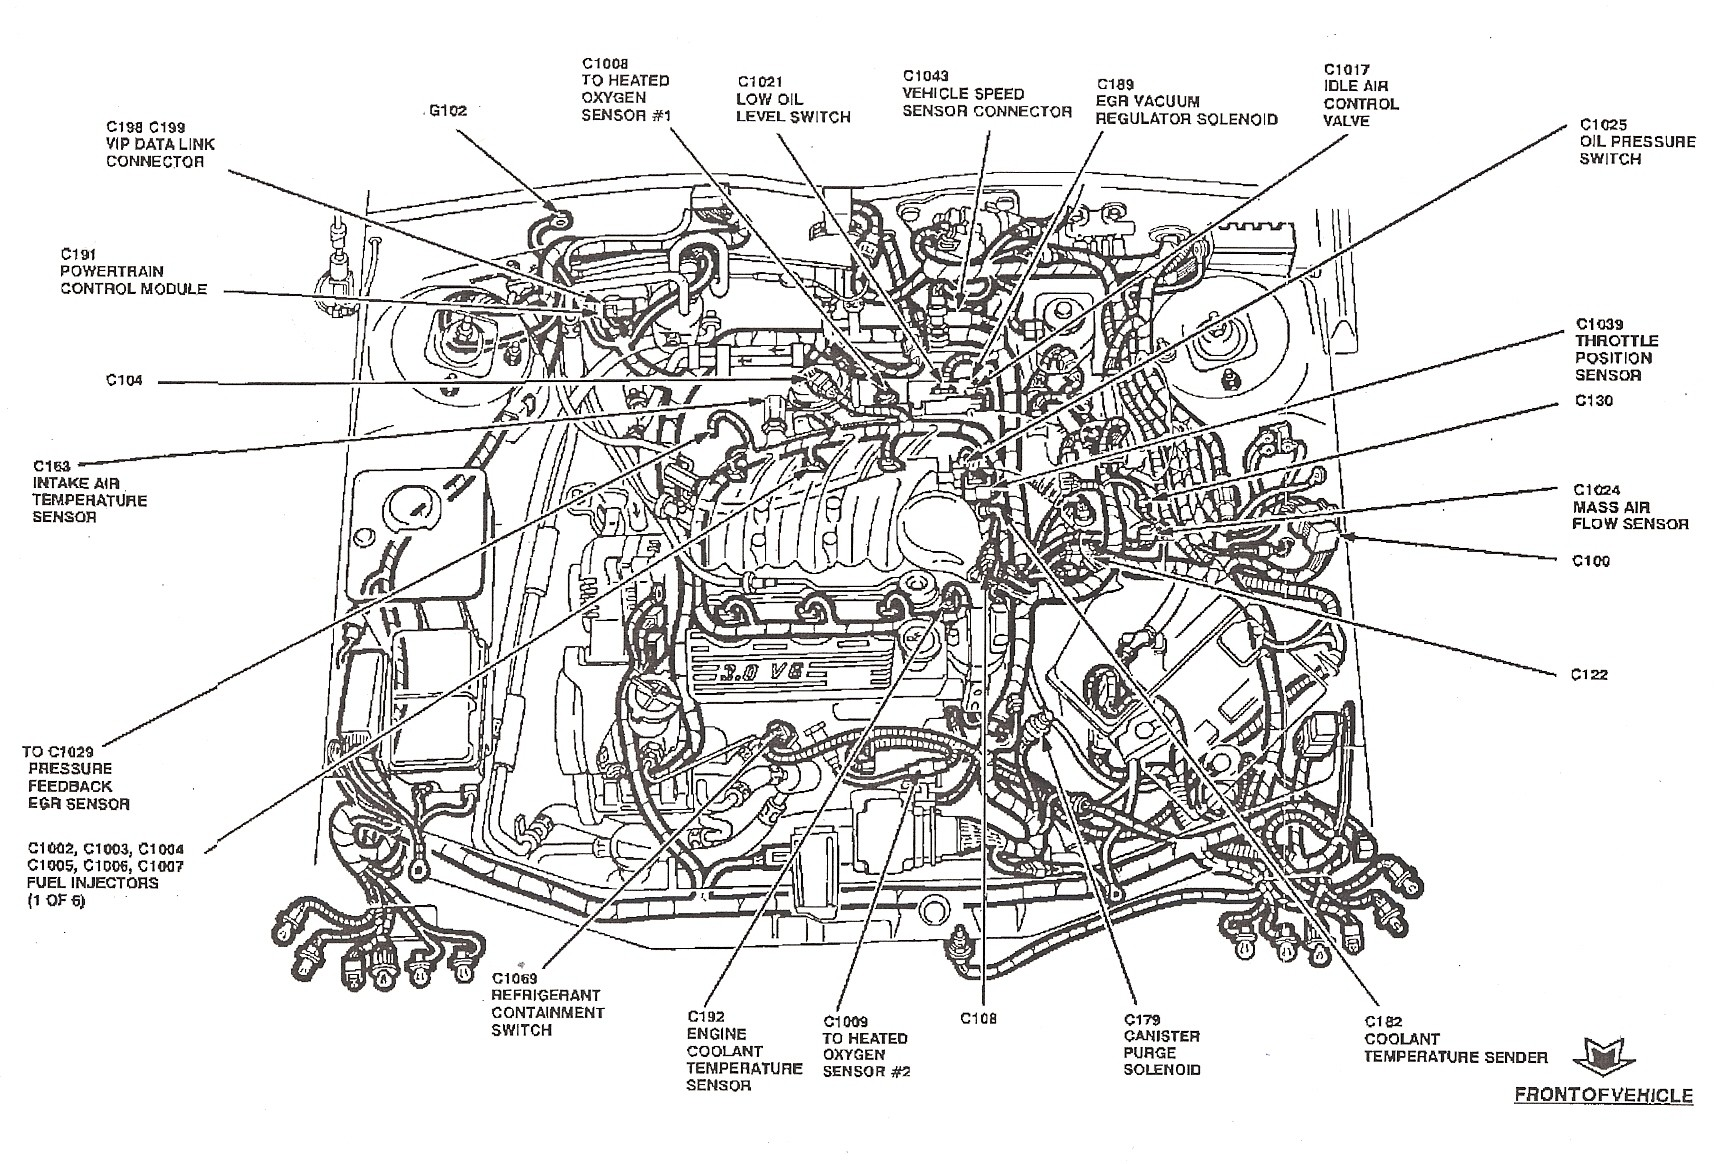 2010 Ford Escape Radio Fuse Diagram Wiring Diagrams 2011 Box Legend 2000 Focus Engine Parts U2022 For Free